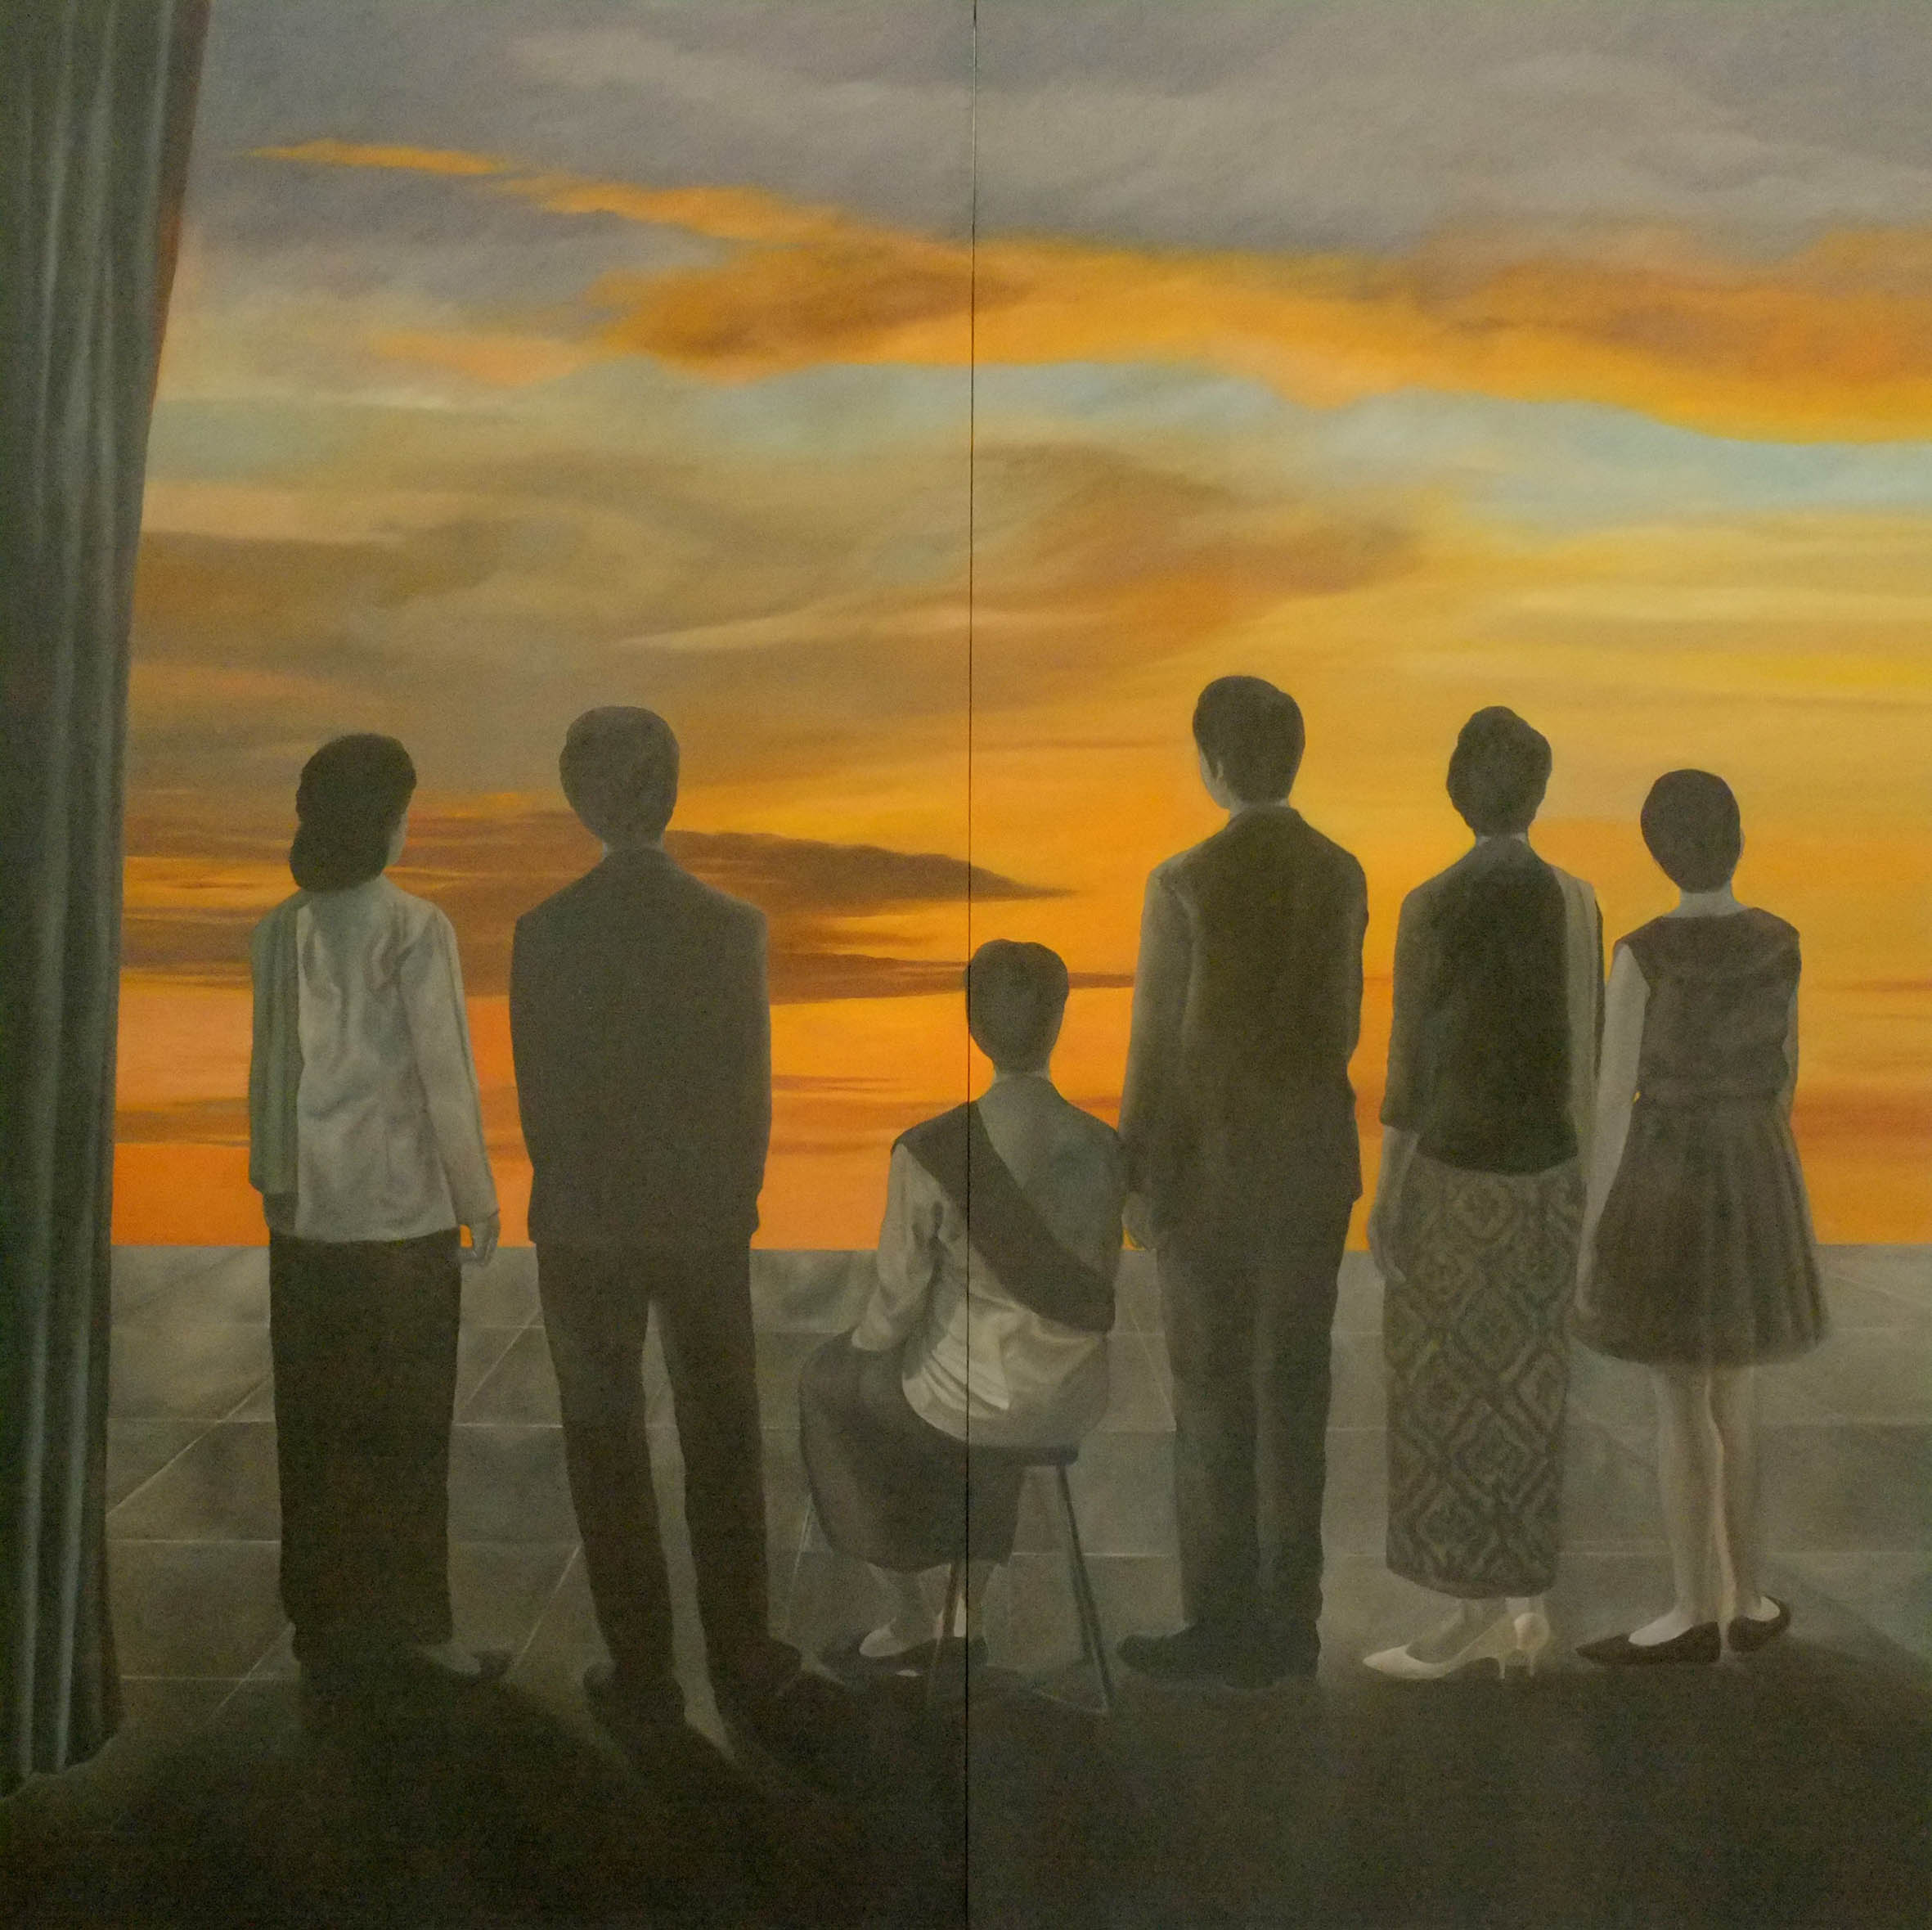 You Know What I Feel_Oil on Canvas_300 x 300 cm_2014